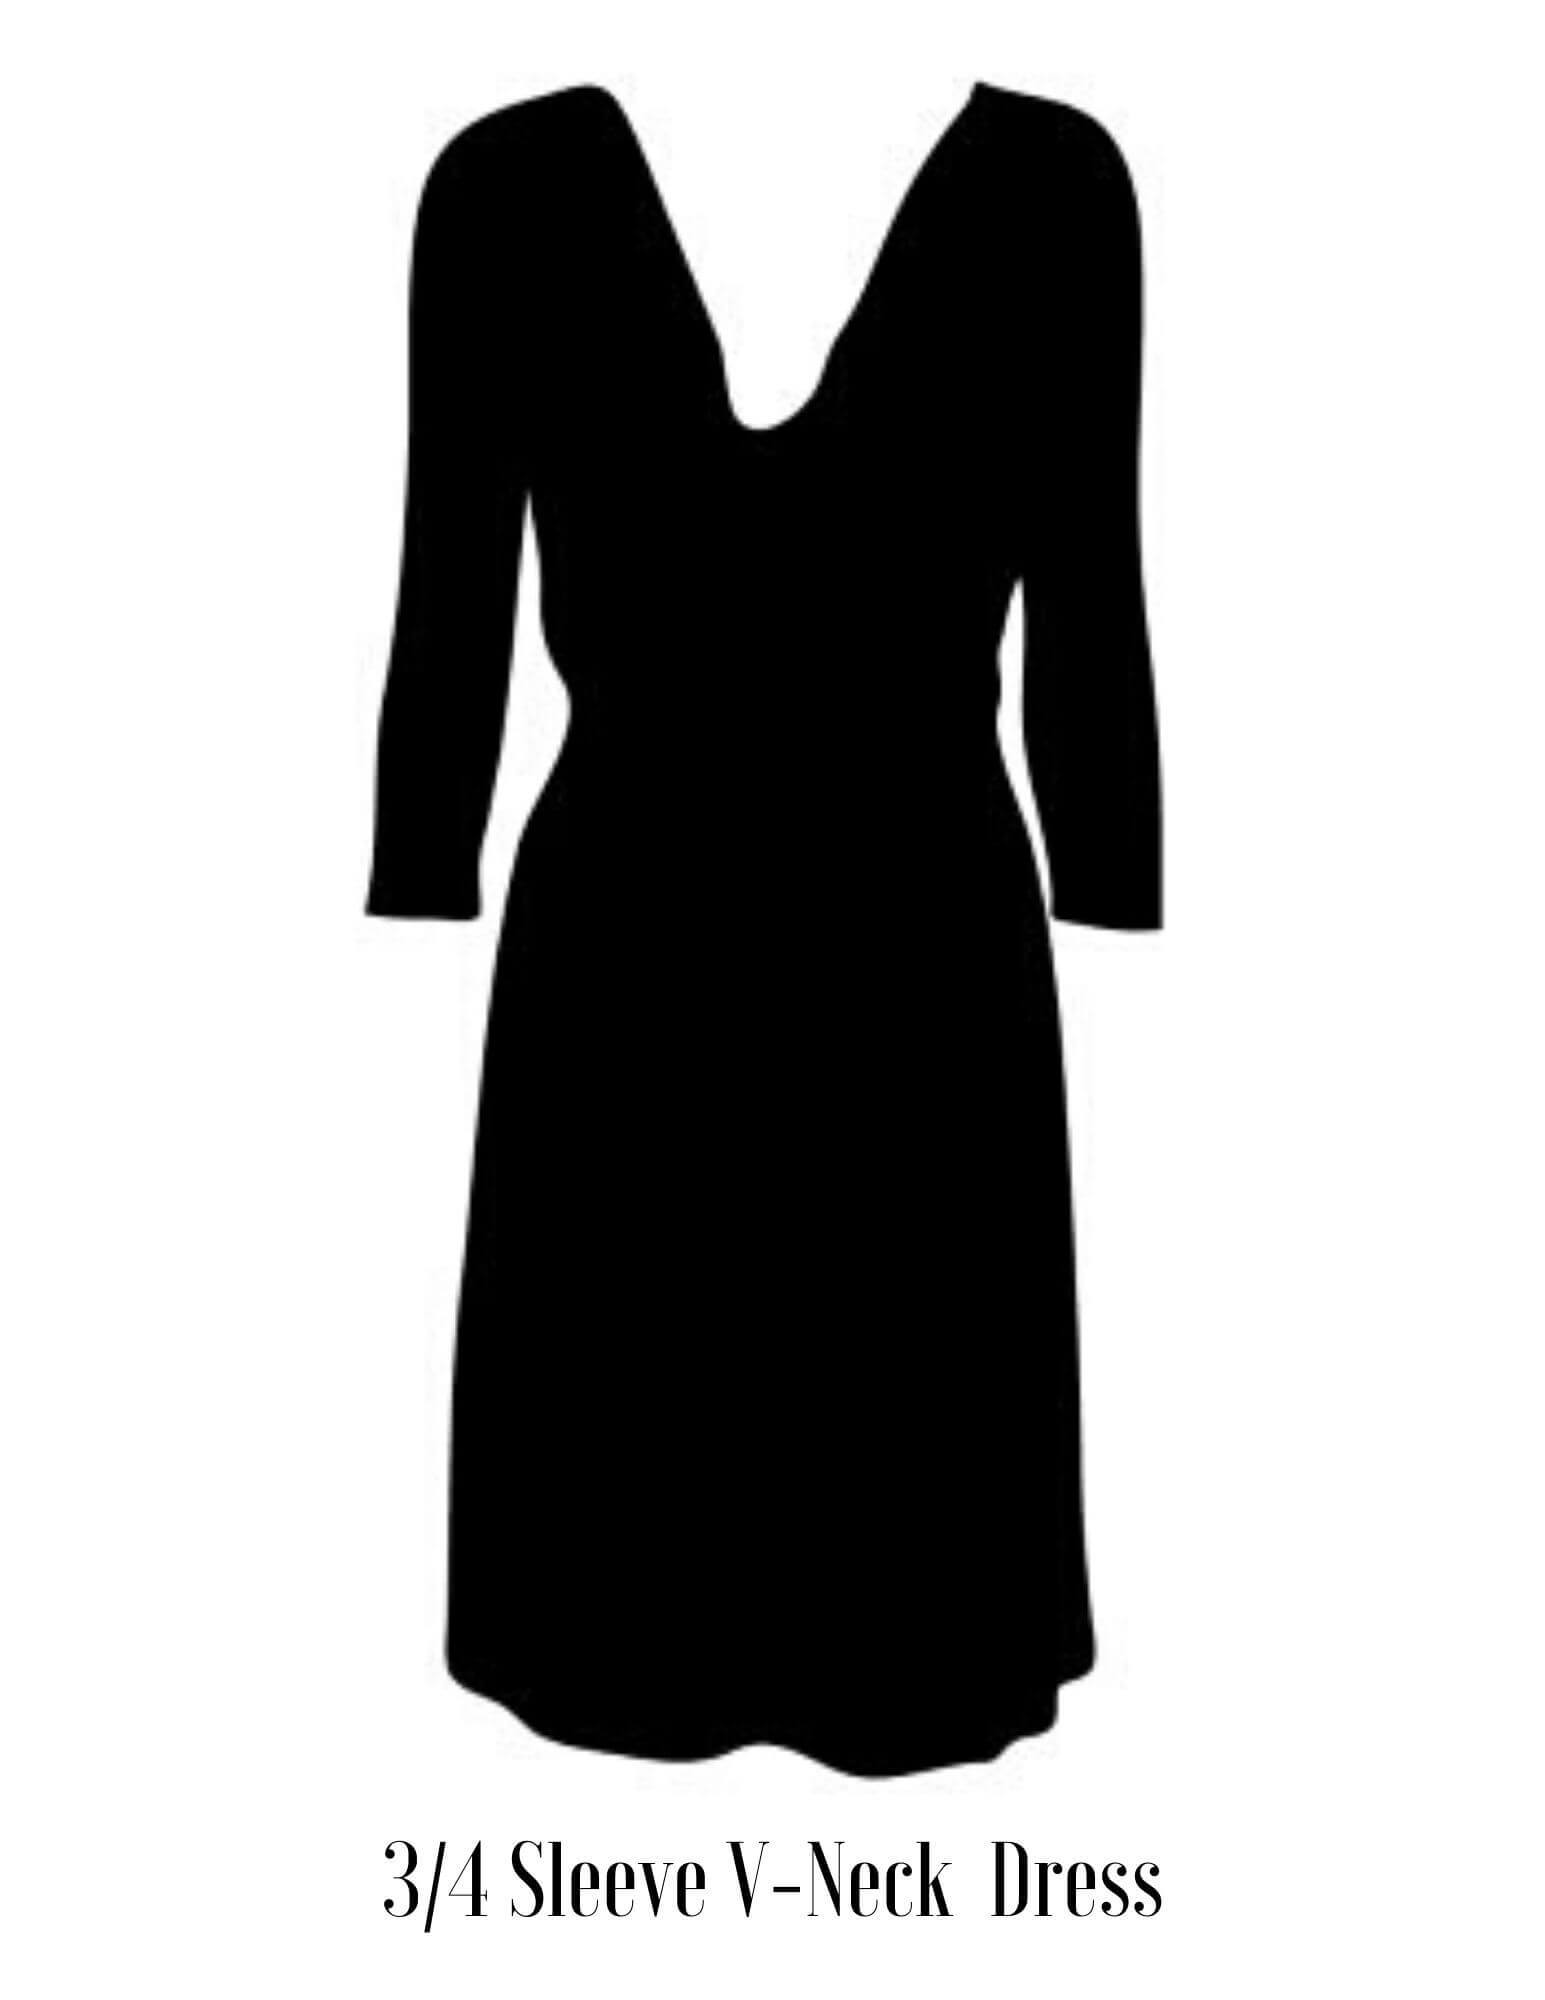 3/4 sleeve dress vector